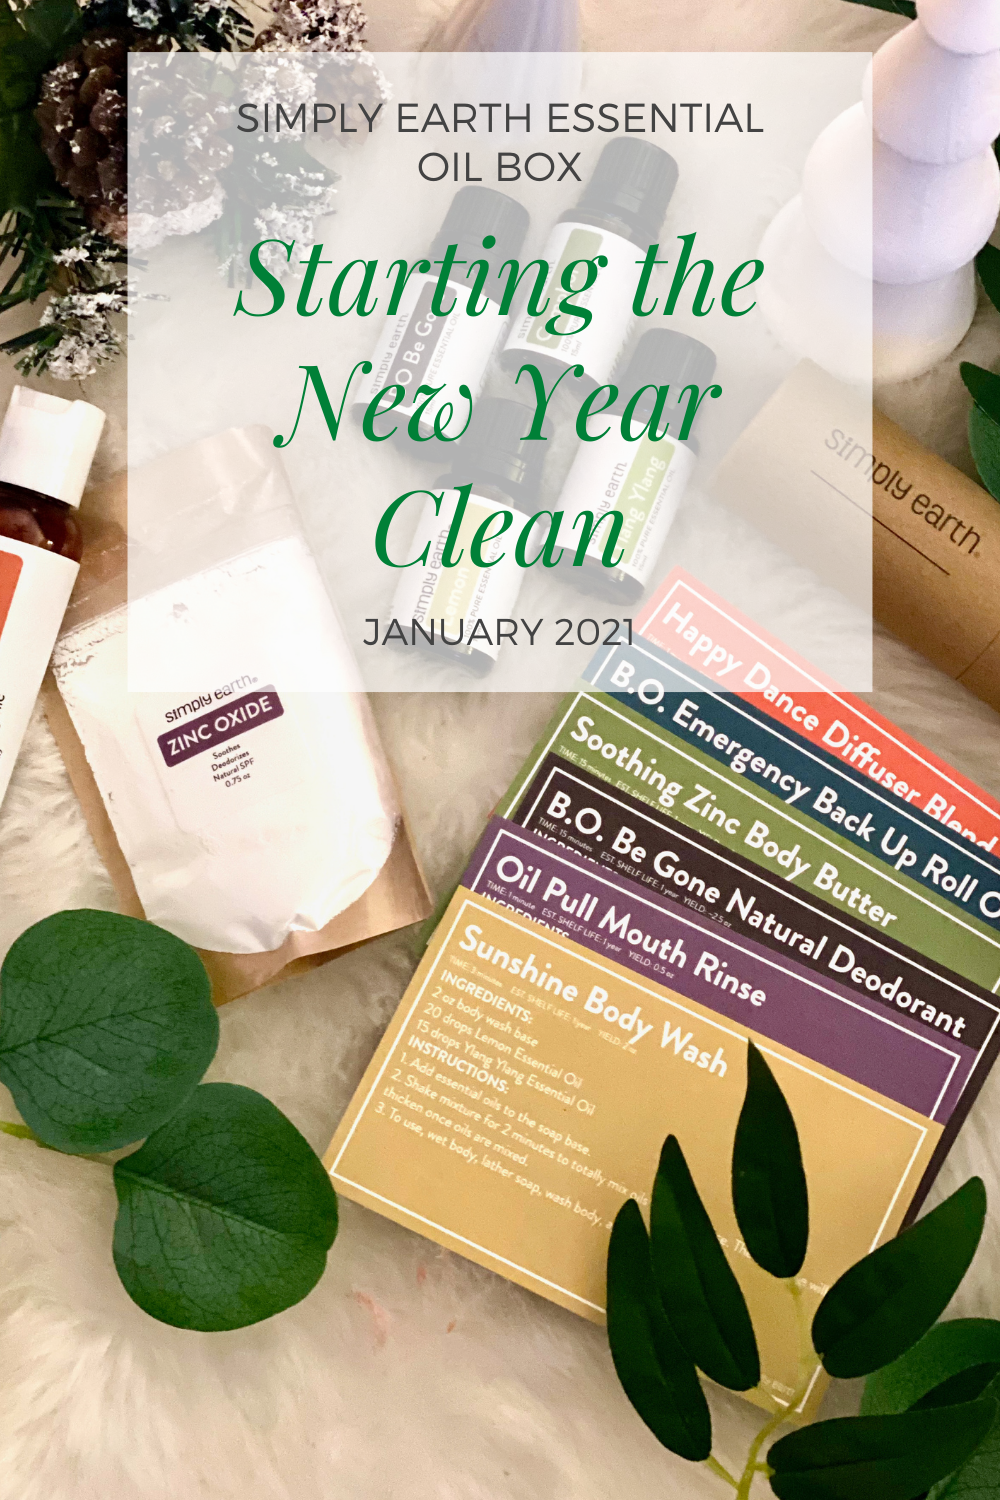 Starting the New Year Clean With Simply Earth